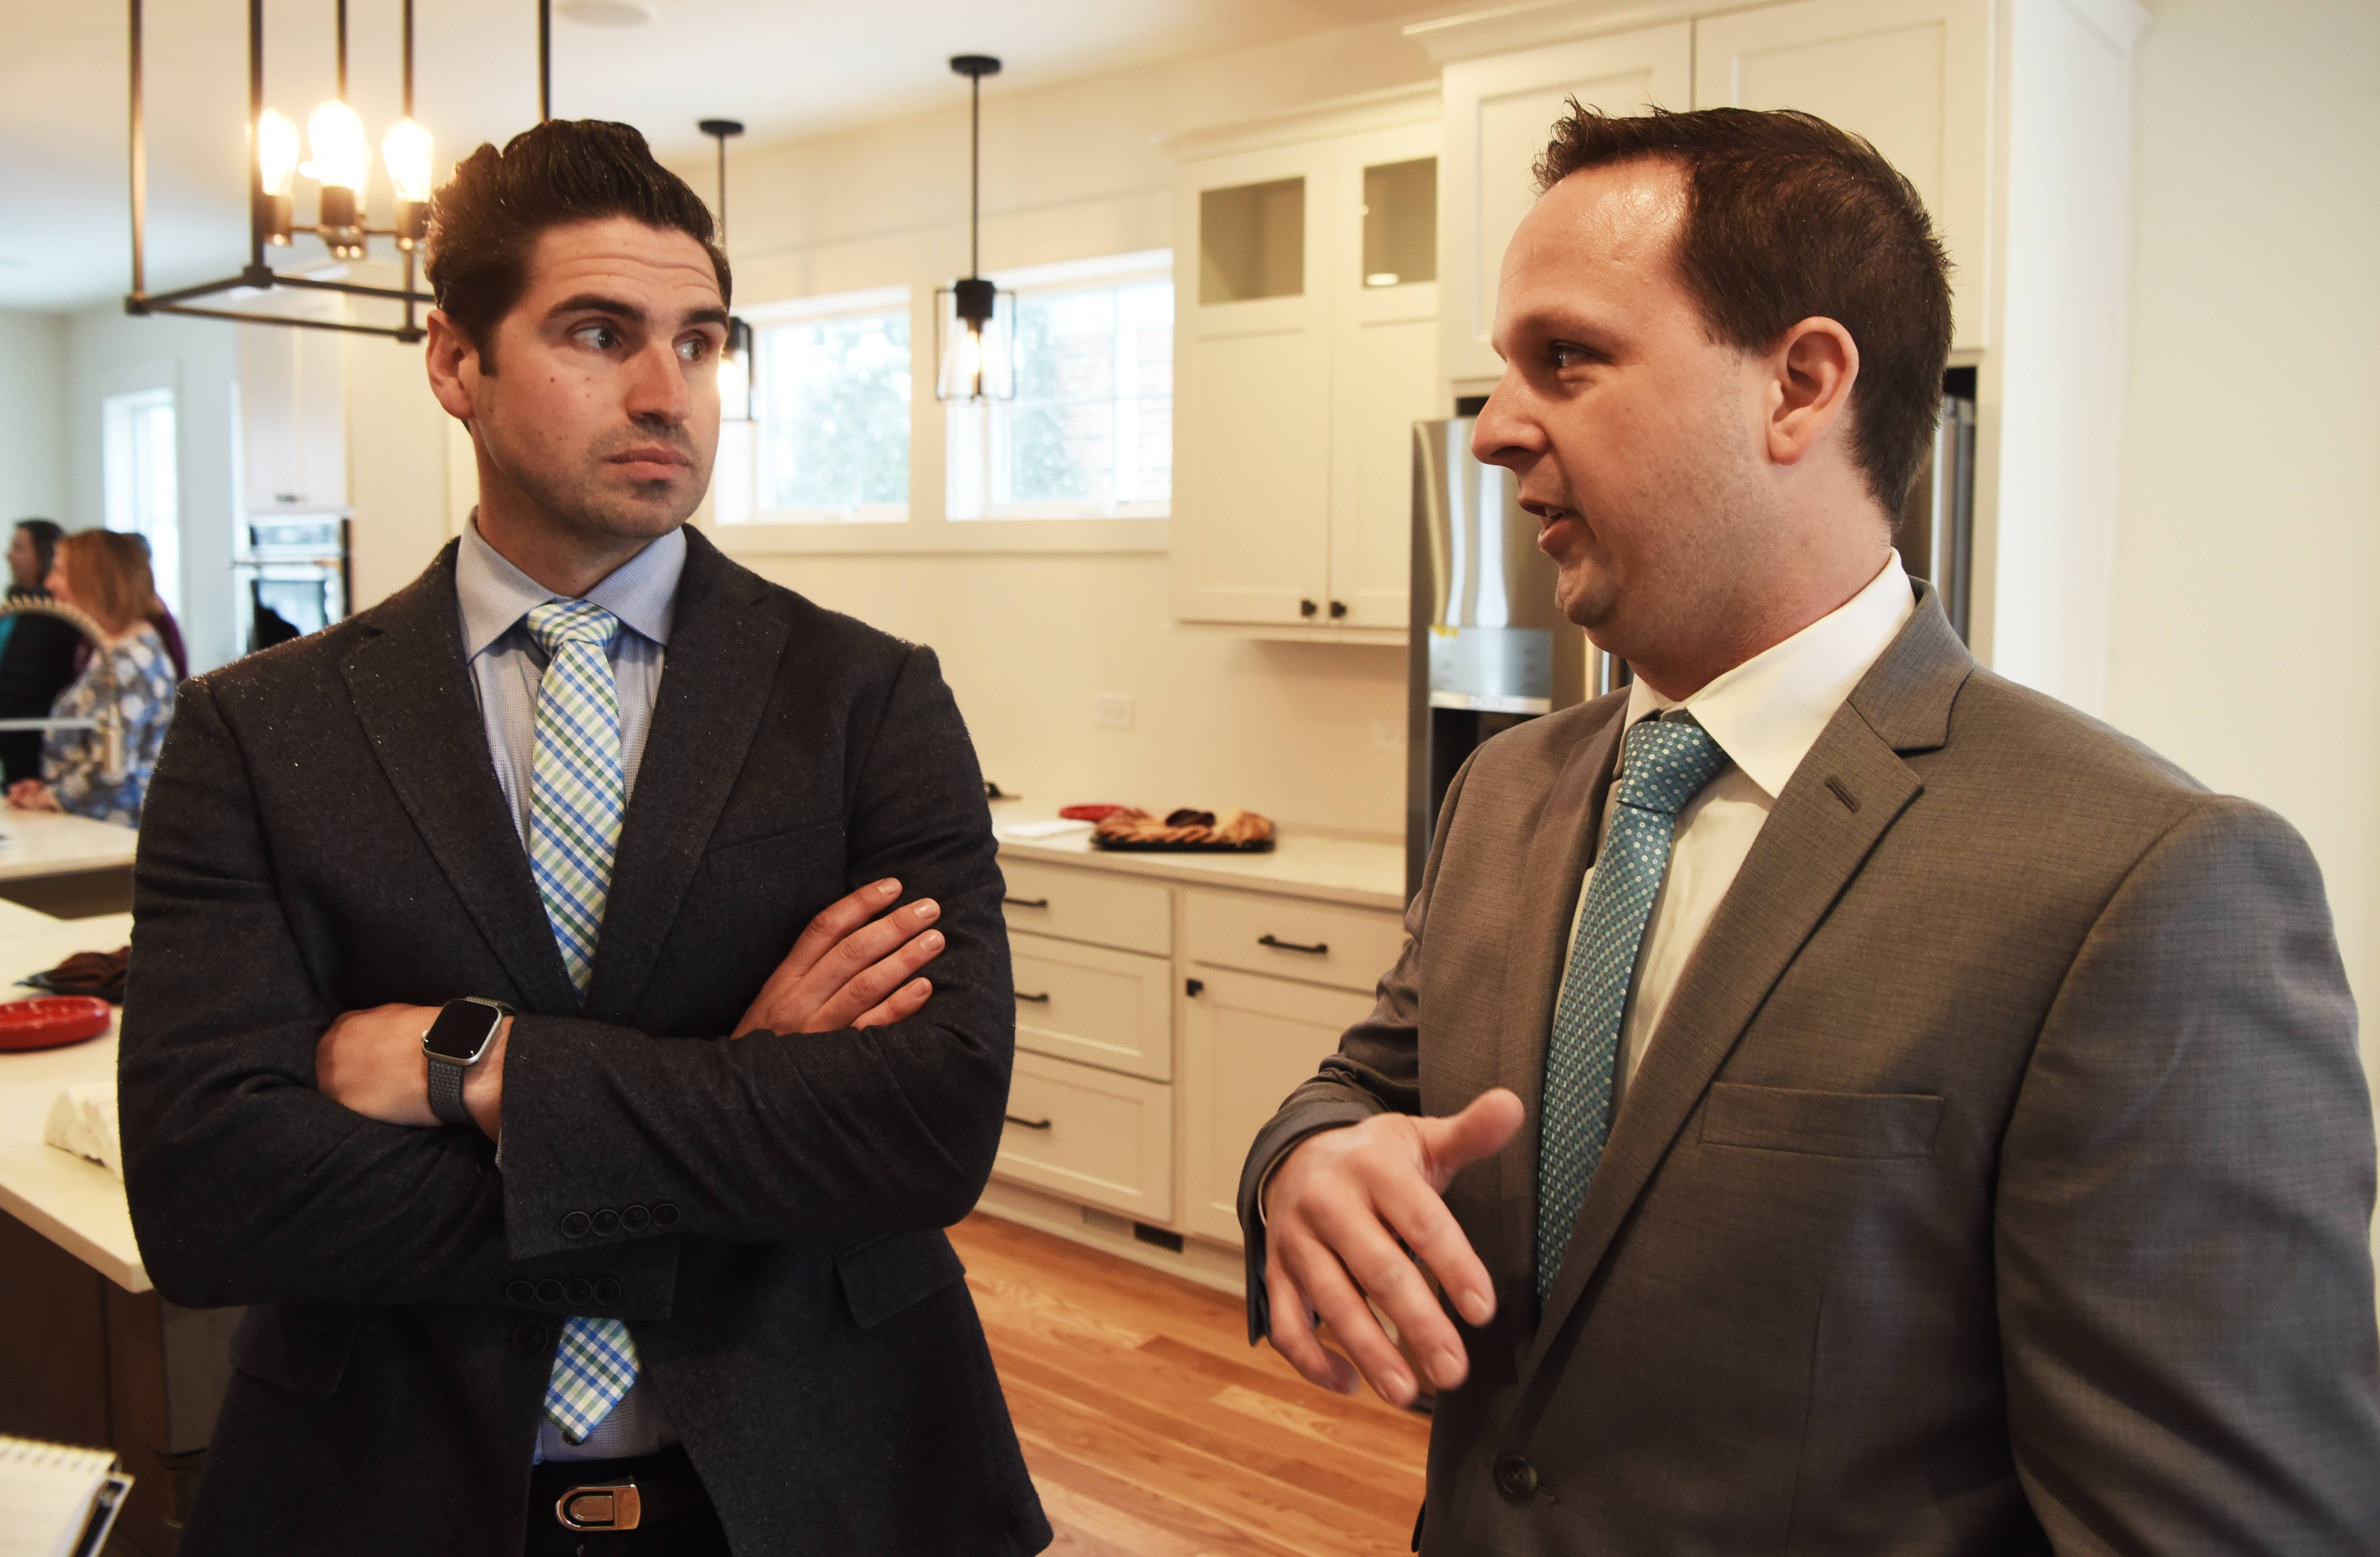 Josh Cattero, left, building construction teacher at Fremd High School, and Chris Gunsteen, who teaches the class at Palatine High School, talk about the home built by their students during an open house Sunday.